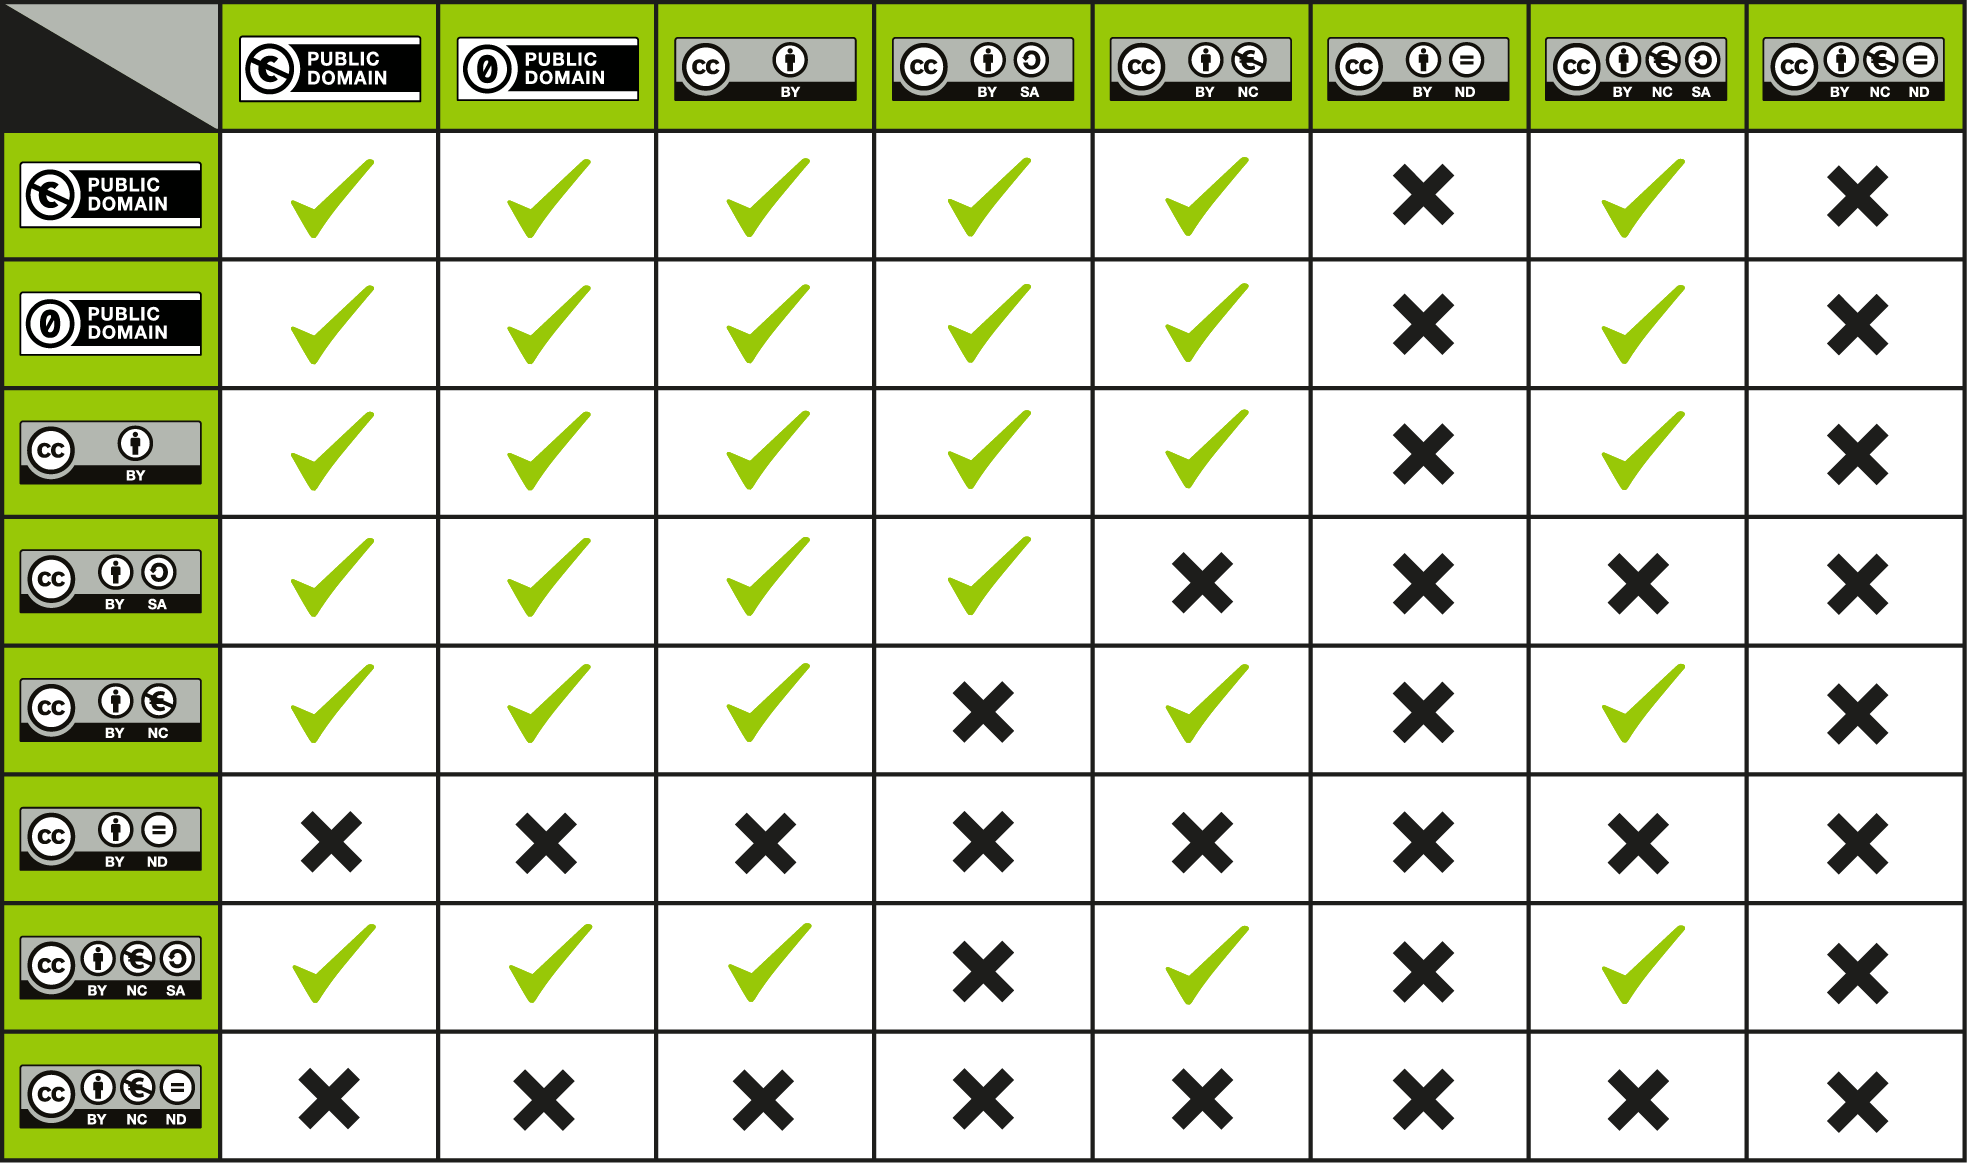 This is a license compatibility chart when you want to combine or mix two CC licensed works. Created by Kennisland published under a CC0 license.